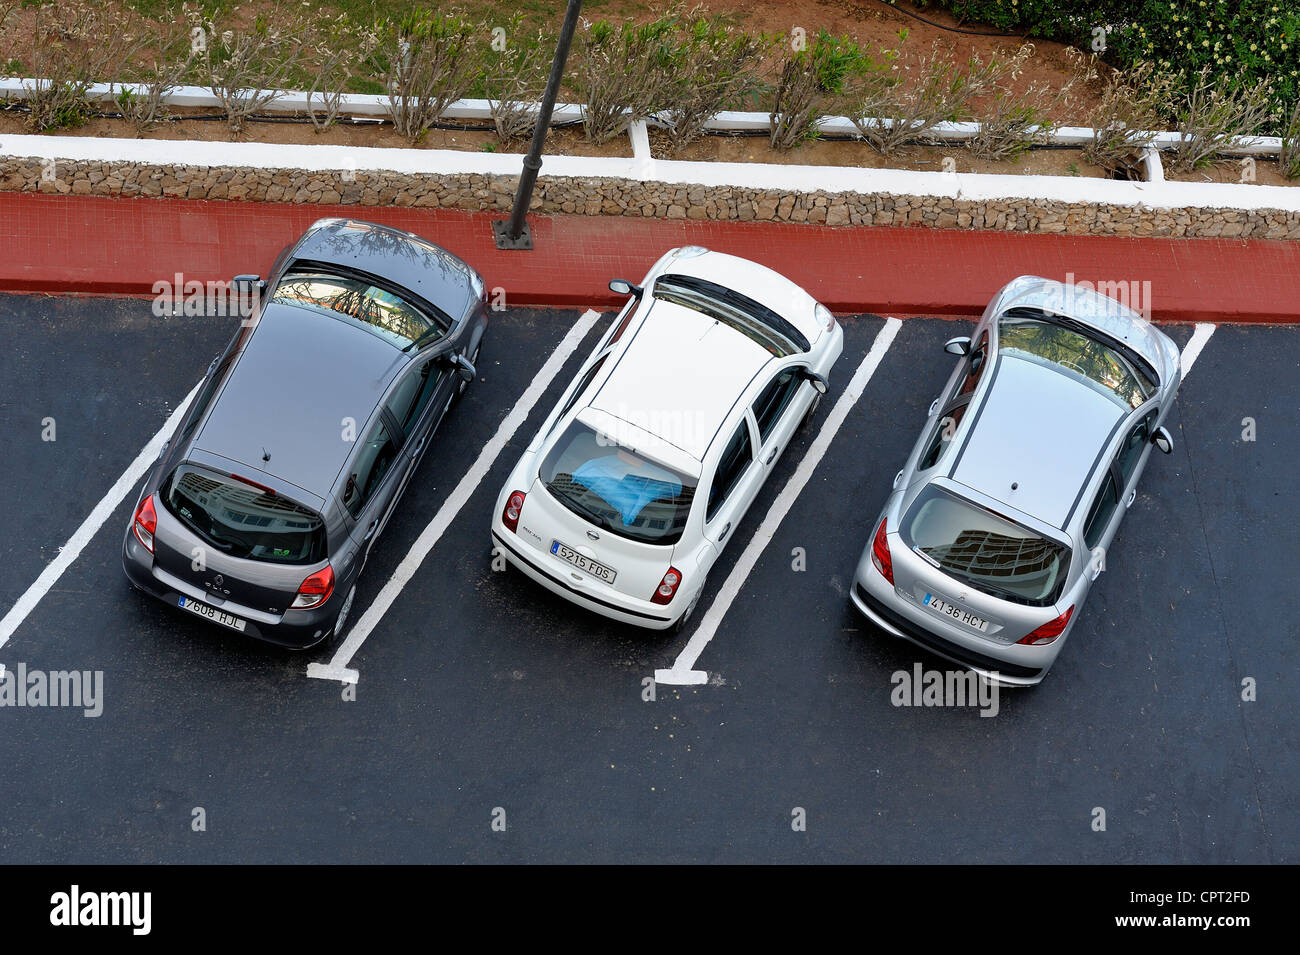 3 hire cars parked in a hotel car park arenal d'en castell menorca Balearic islands spain - Stock Image